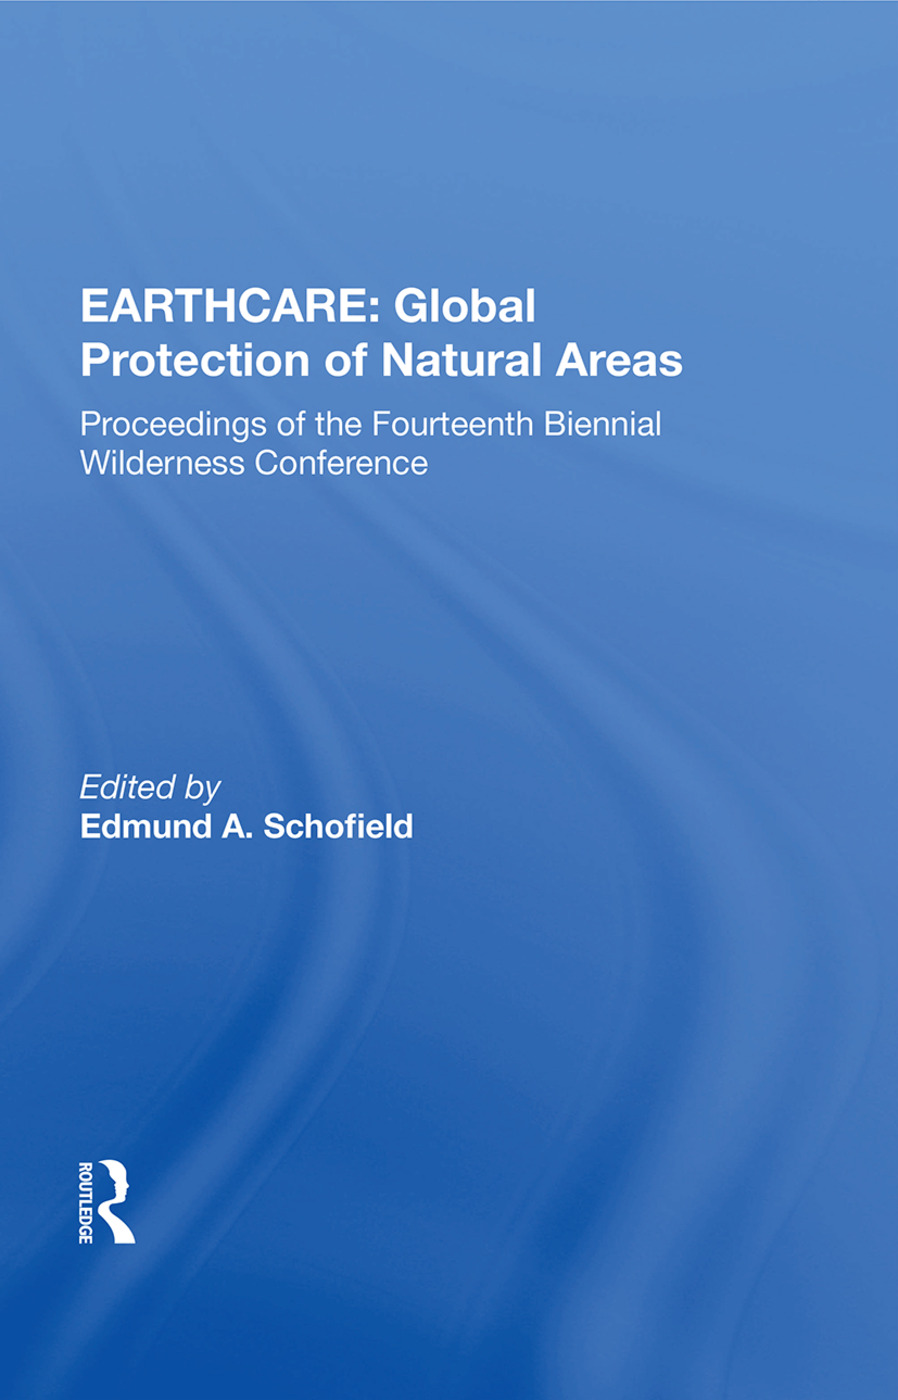 EARTHCARE: Global Protection of Natural Areas